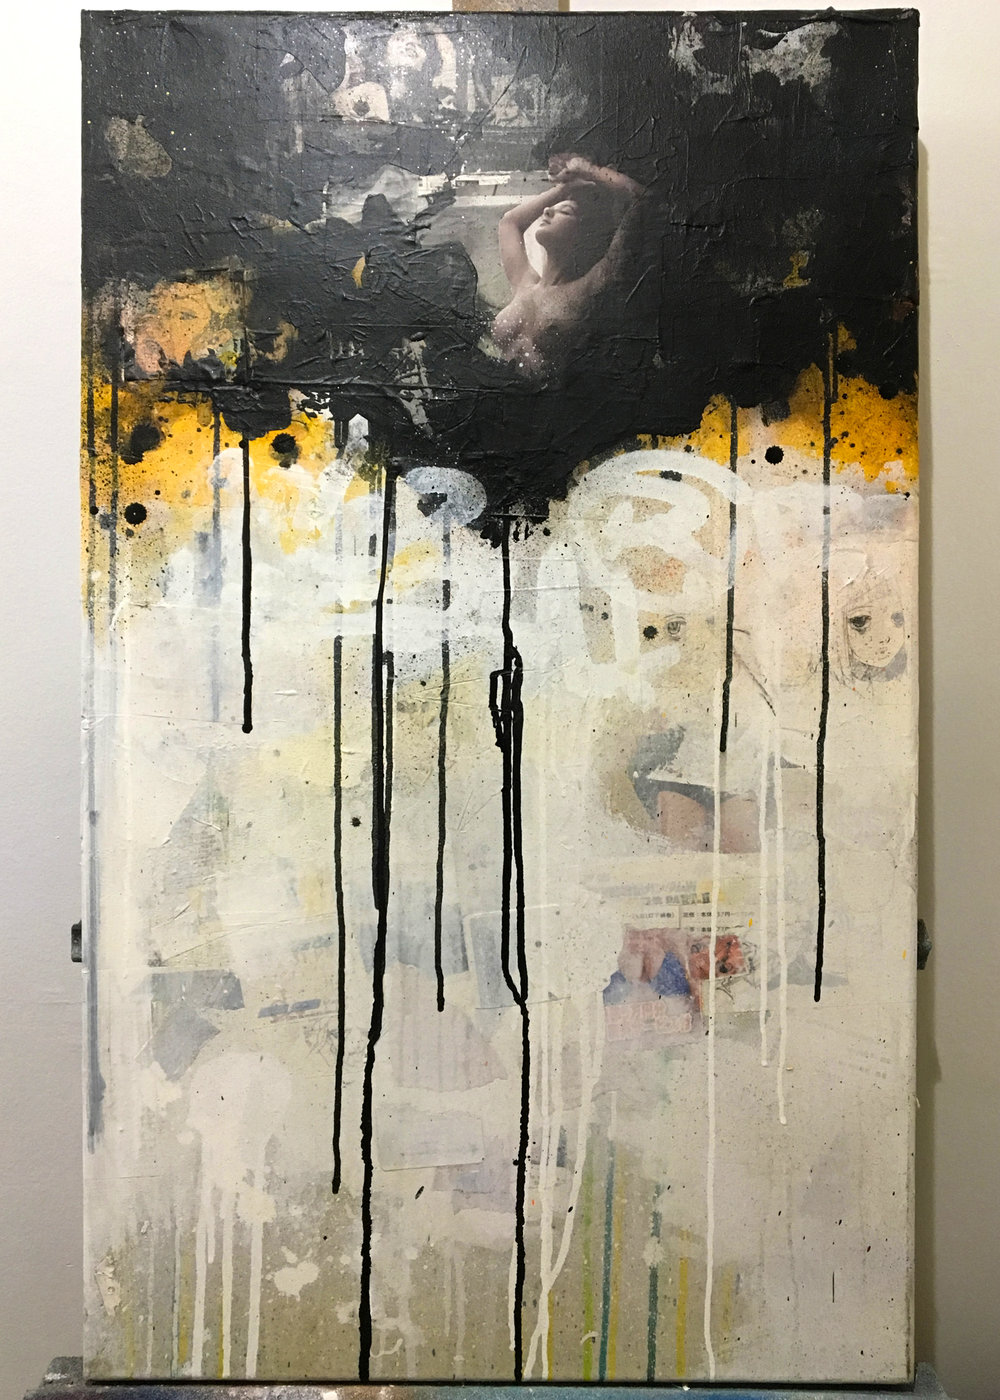 Possible Entry 2 - Yellow Canvas (New - in progress)